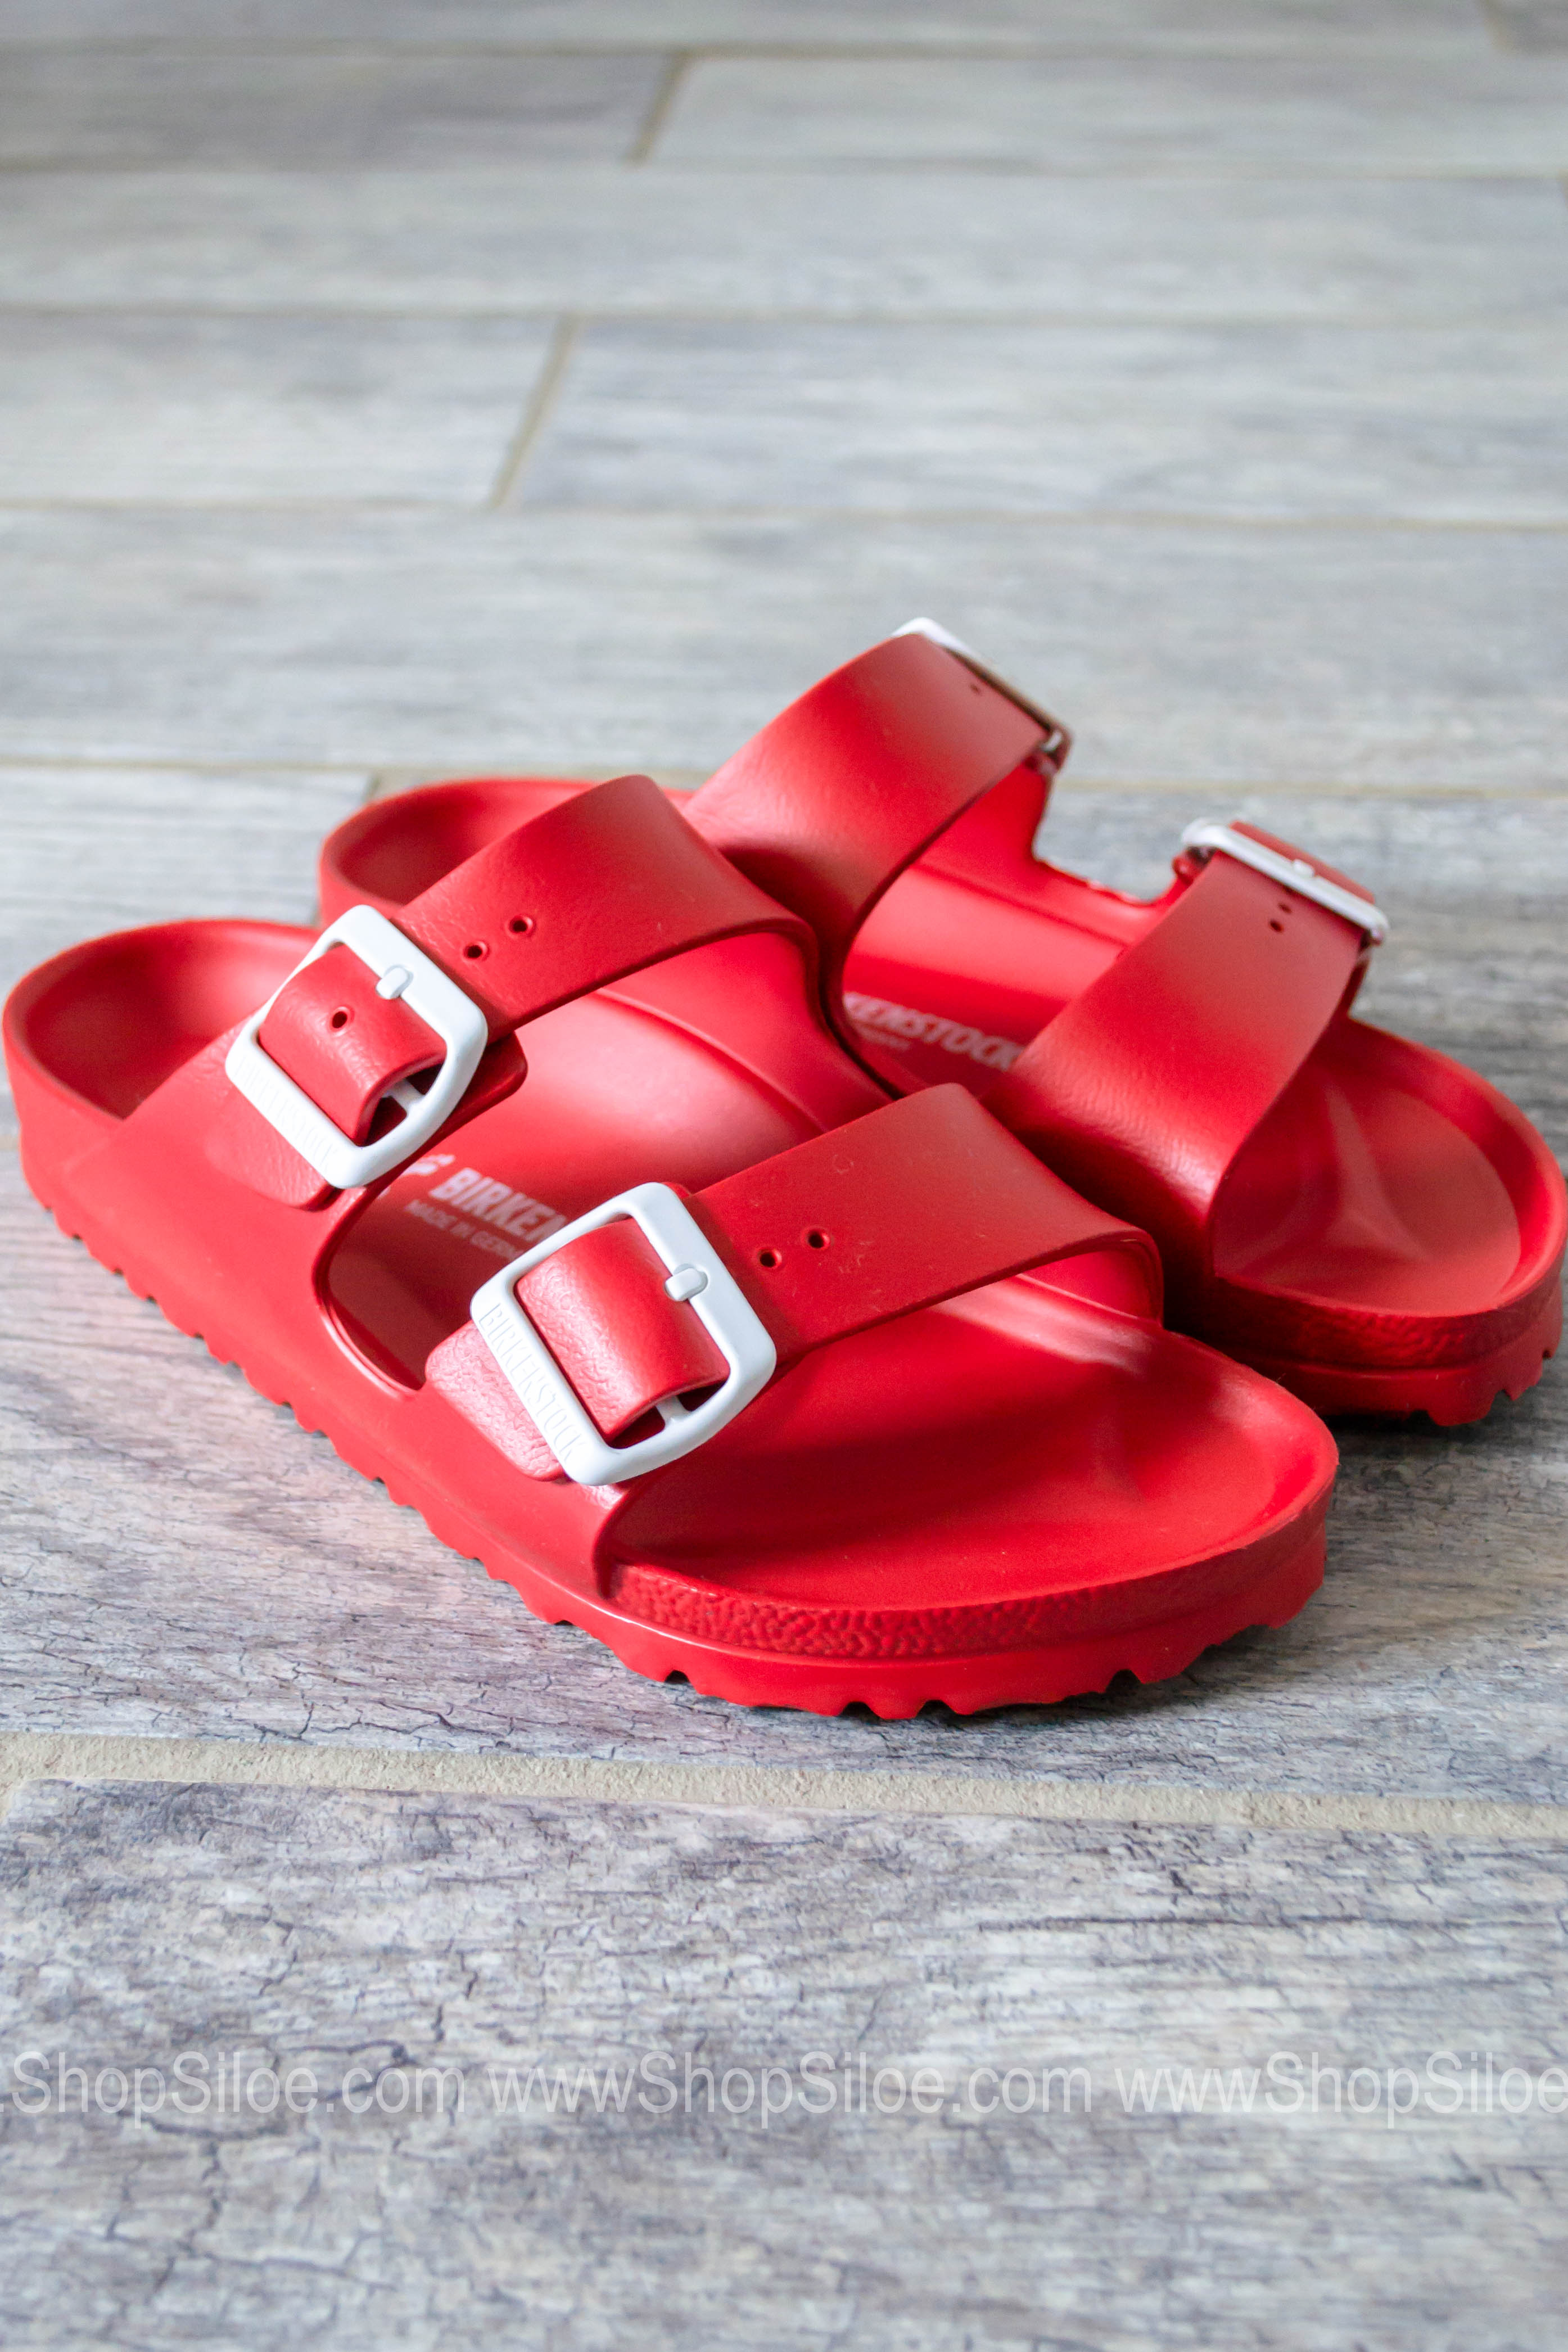 b81e21dcb0 Arizona EVA Birkenstocks